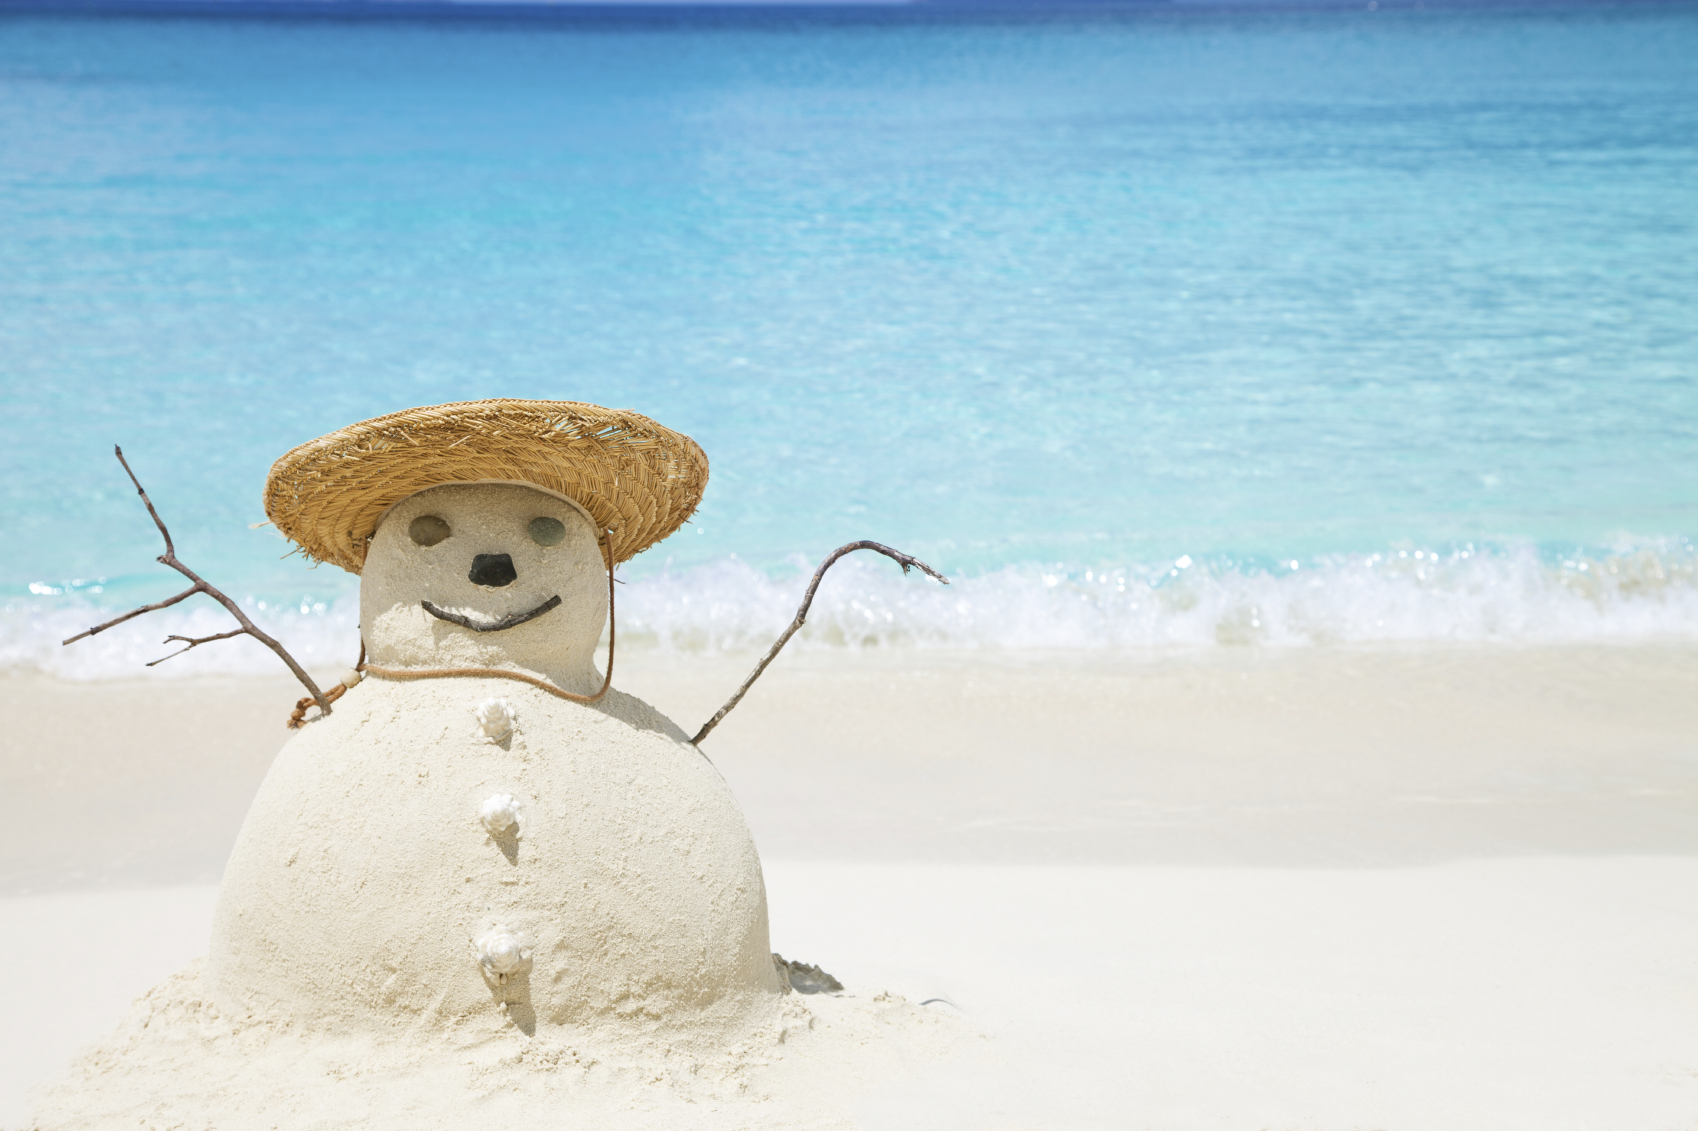 Winter Travel: Where would you like to go?